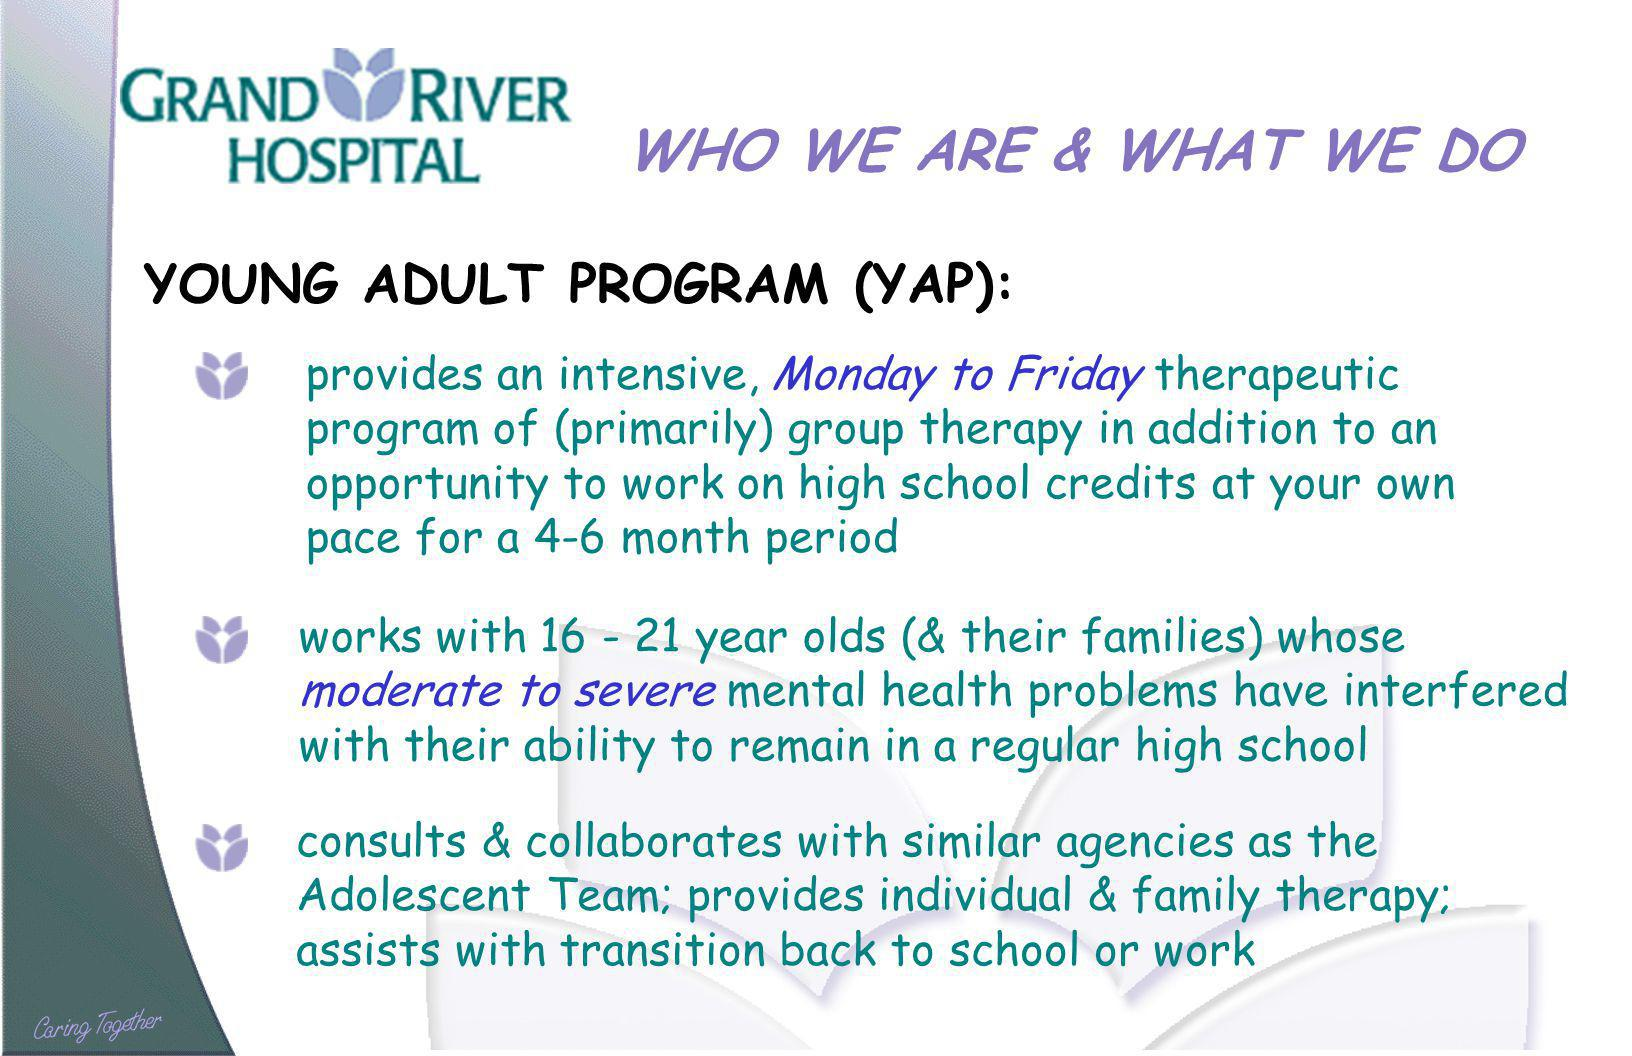 WHO WE ARE & WHAT WE DO YOUNG ADULT PROGRAM (YAP): provides an intensive, Monday to Friday therapeutic program of (primarily) group therapy in addition to an opportunity to work on high school credits at your own pace for a 4-6 month period works with year olds (& their families) whose moderate to severe mental health problems have interfered with their ability to remain in a regular high school consults & collaborates with similar agencies as the Adolescent Team; provides individual & family therapy; assists with transition back to school or work